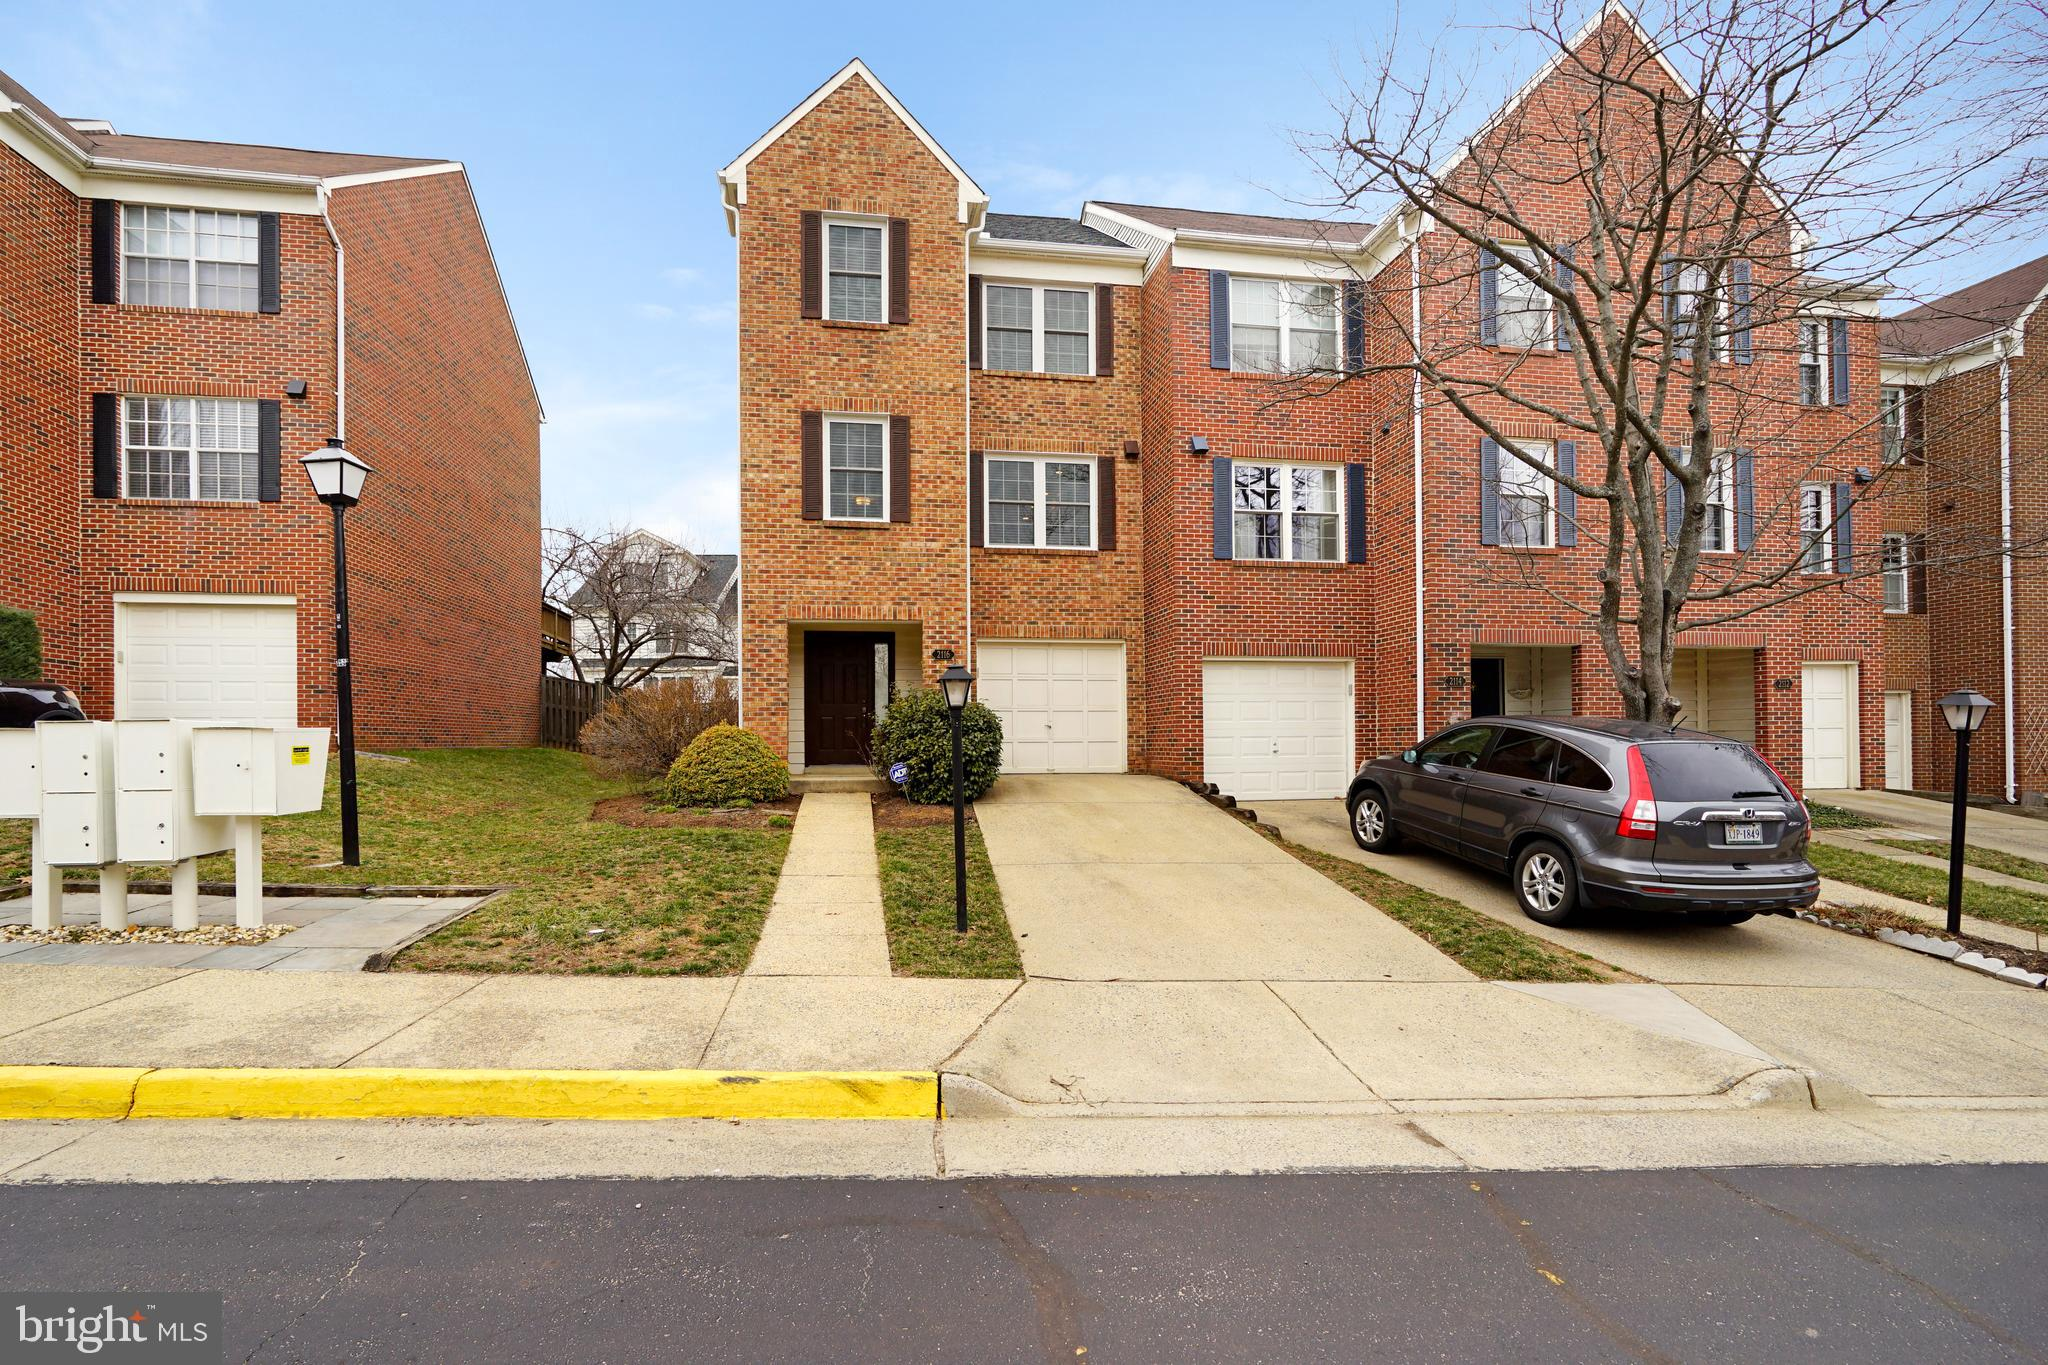 Available July 26th, 1-car garage end unit townhouse in Falls Church near Whole Foods, Trader Joes, 66, WFC Metro or 495/Tysons. Renovated kitchen features island seating, custom built-in storage area, open floorplan with dining room and family room, deck, walk-out lower level with fully fenced yard, primary suite with custom closet, skylight and en-suite, 2 more bedrooms and a hallway bath, full size washer/dryer, newer carpet. Unassigned spaces can be used for guests. Low utilities: $150/mo avg electric, $58/mo avg water. No pets. Photos are from previous tenant. Rental applications due on Monday June 14th.